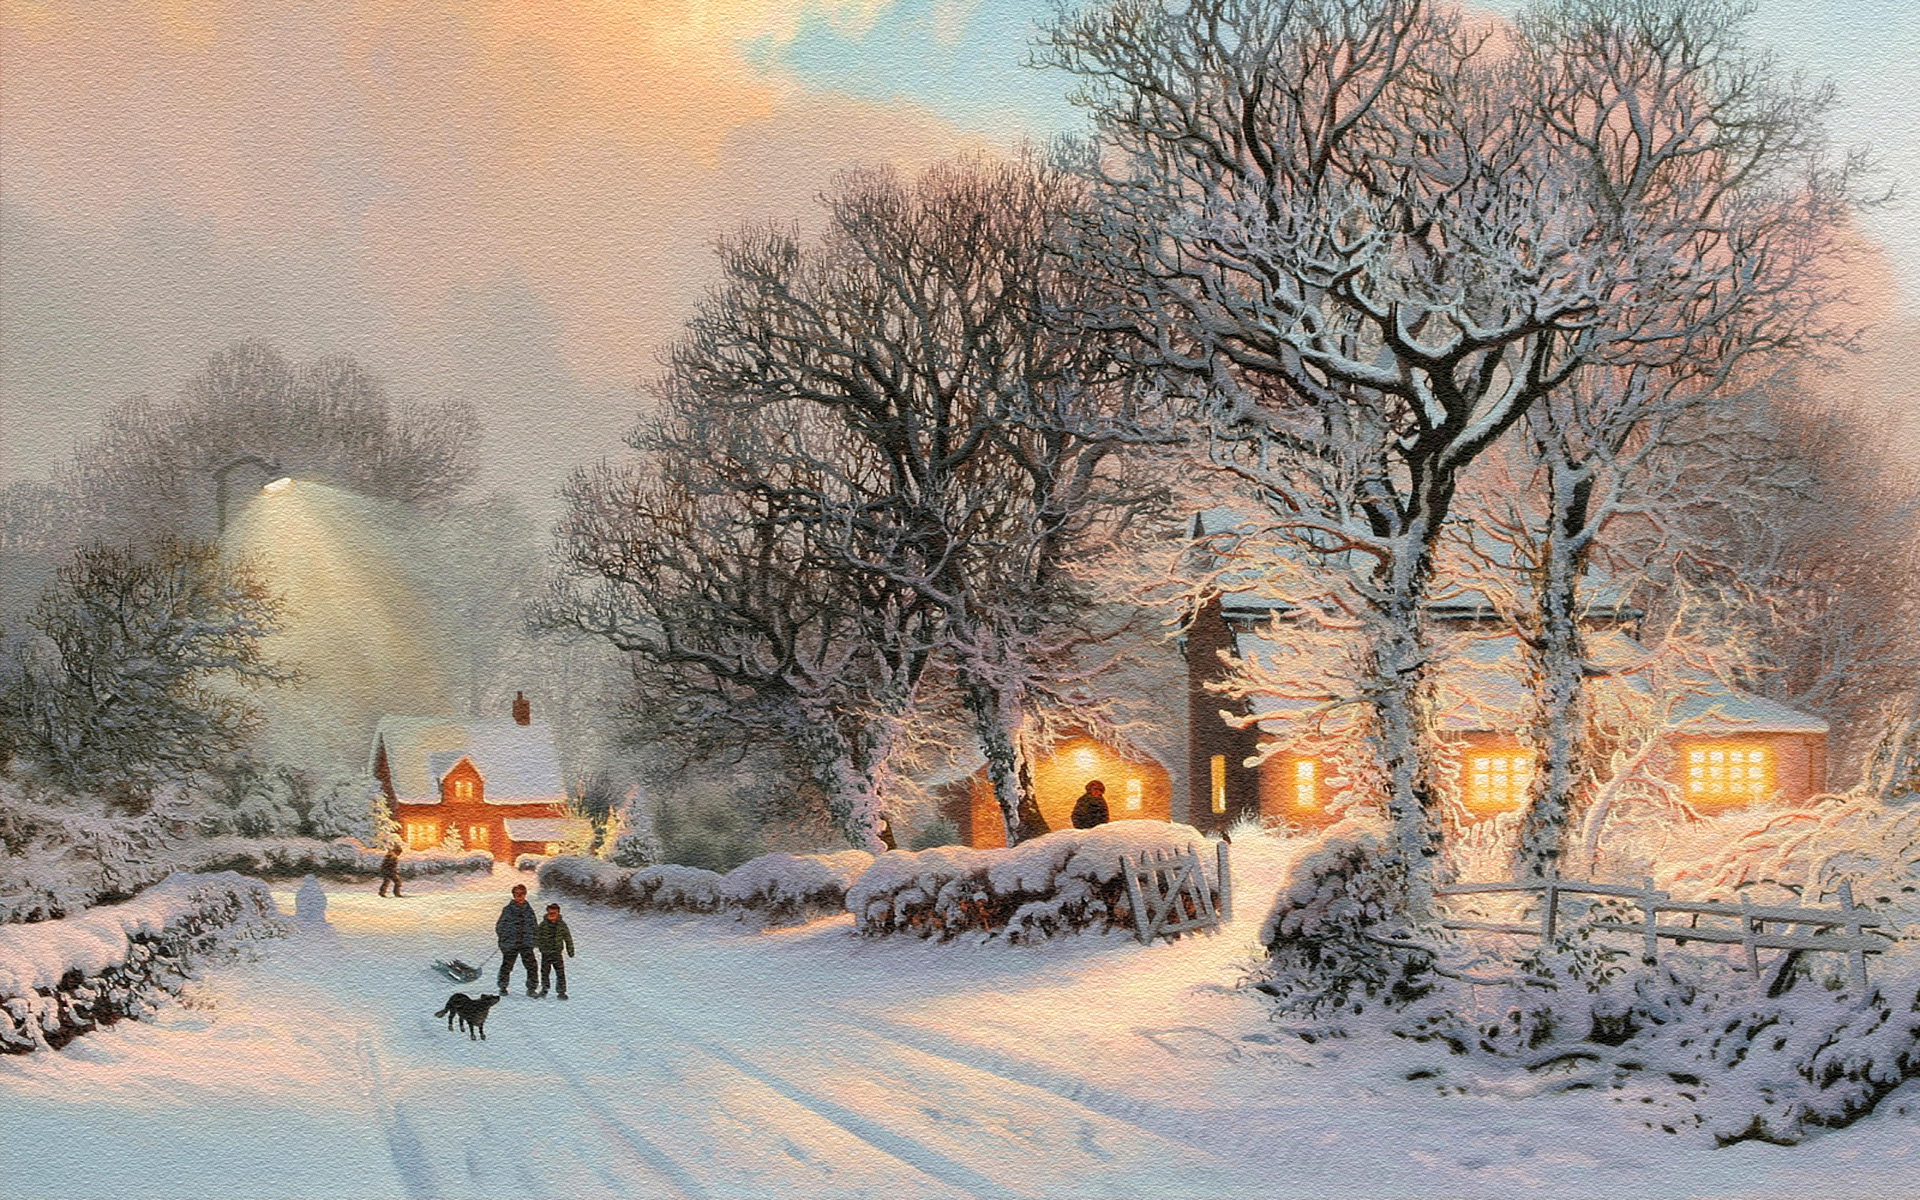 Animated Snow Falling Wallpaper Free Download 25 Stunning Winter Wallpapers